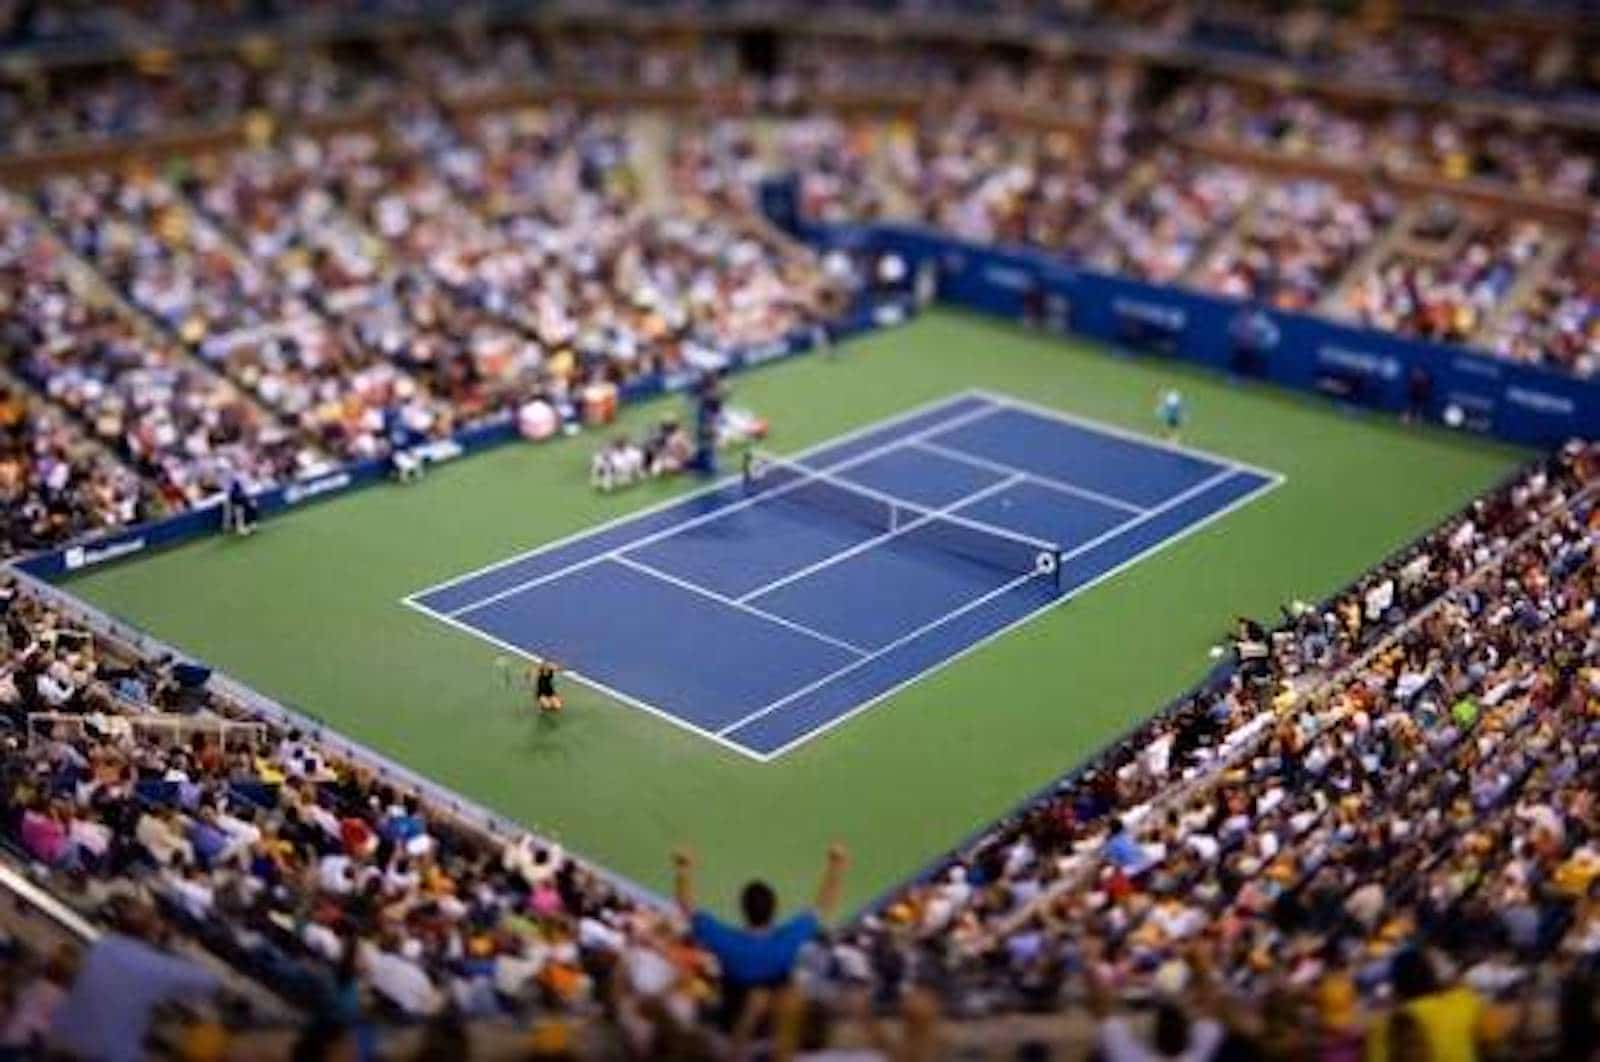 What is a Tilt Shift Shot - Tilt Shift Lens - Tilt Shift Photo - Miniature Example